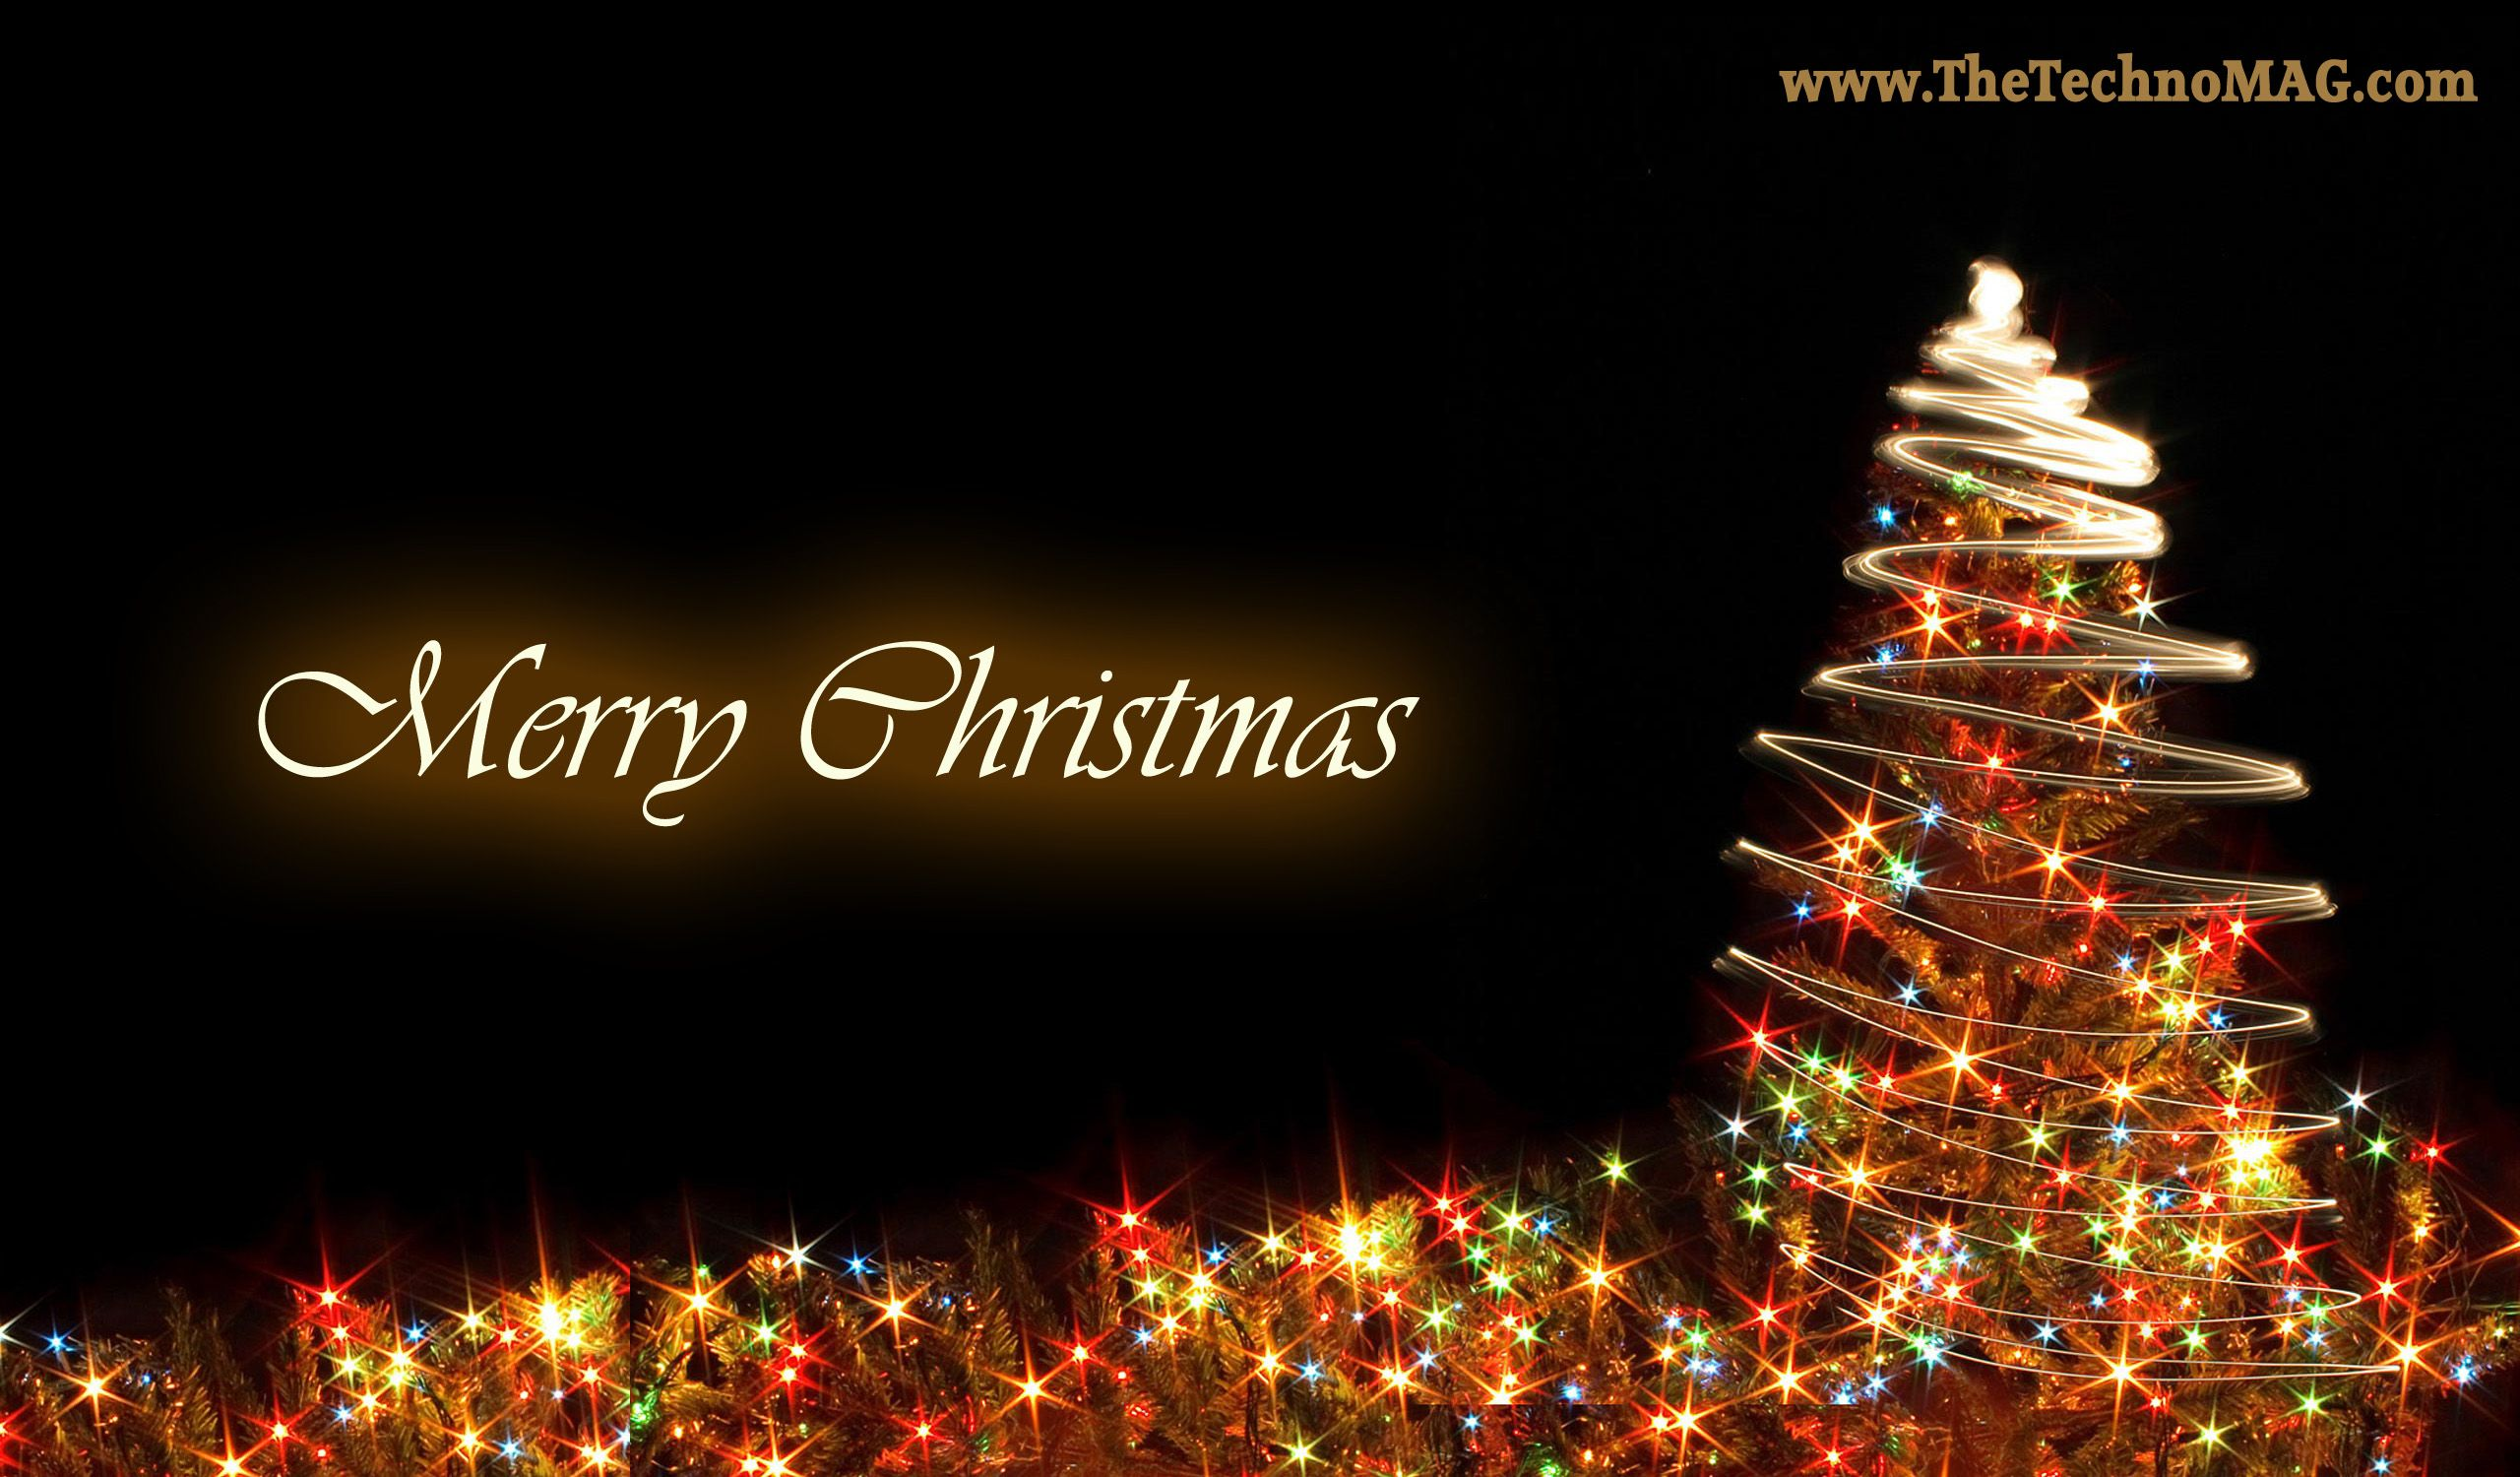 merry-christmas-wallpaper-christmas-desktop-wallpapers | Christmas